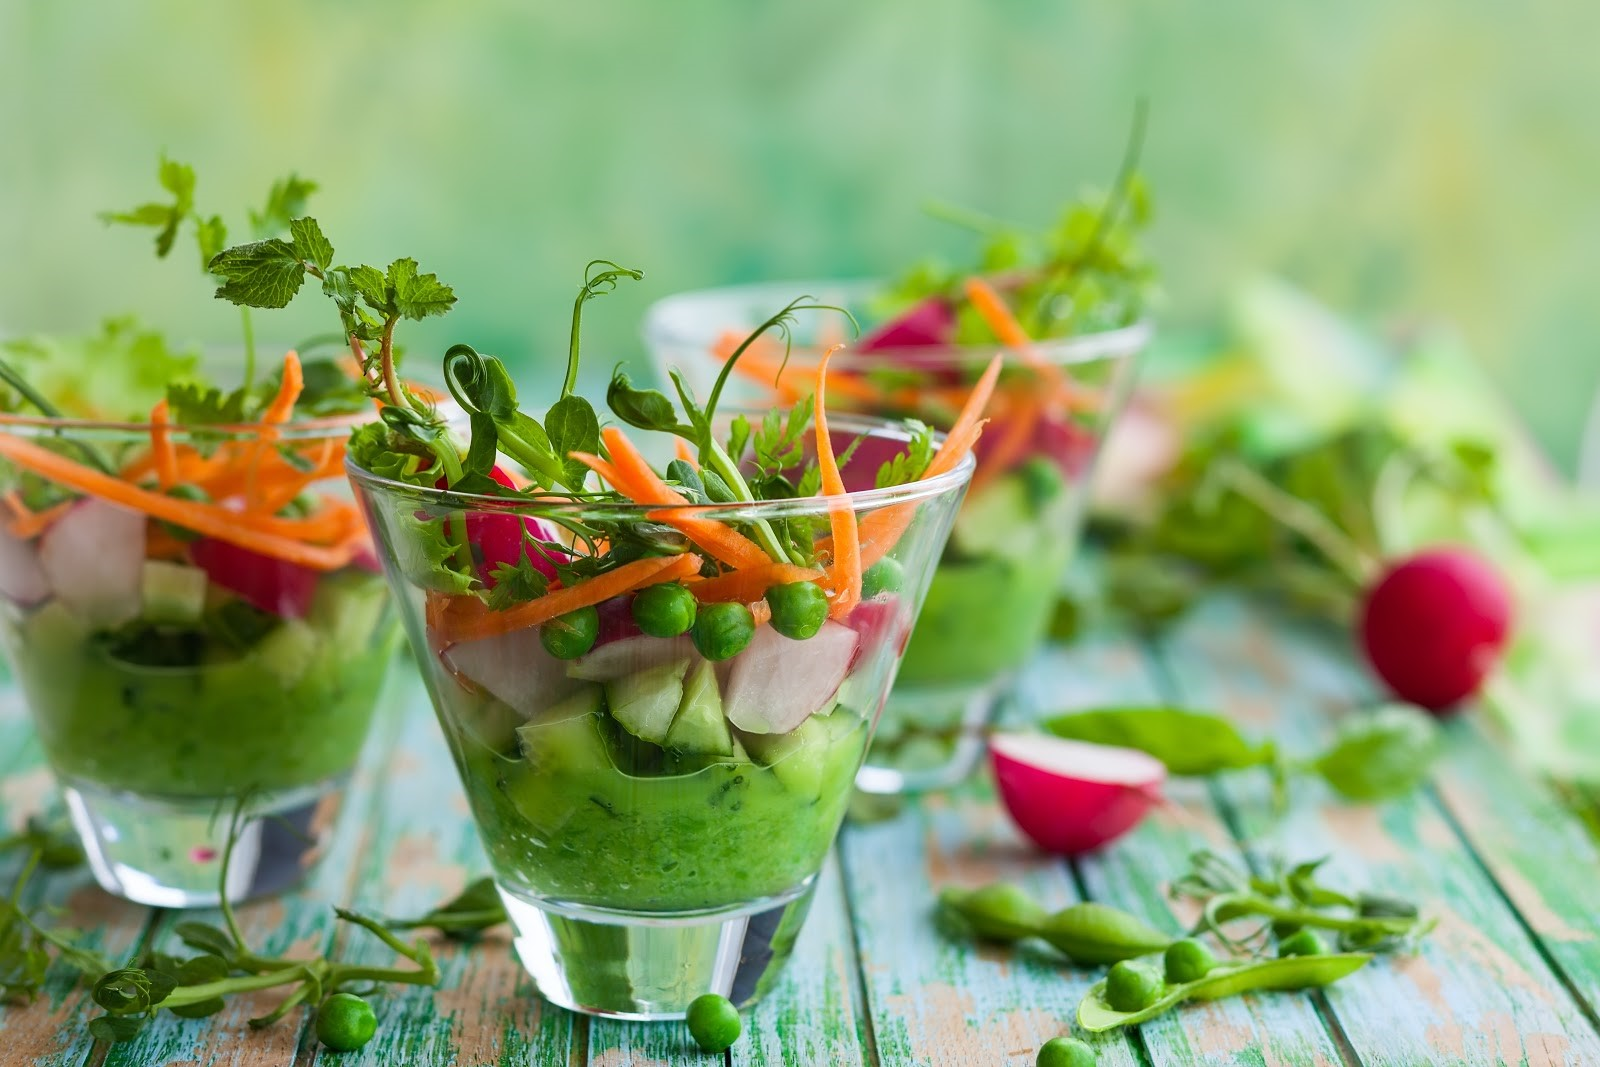 Have You Ever Wanted To Try The Raw Food Diet?